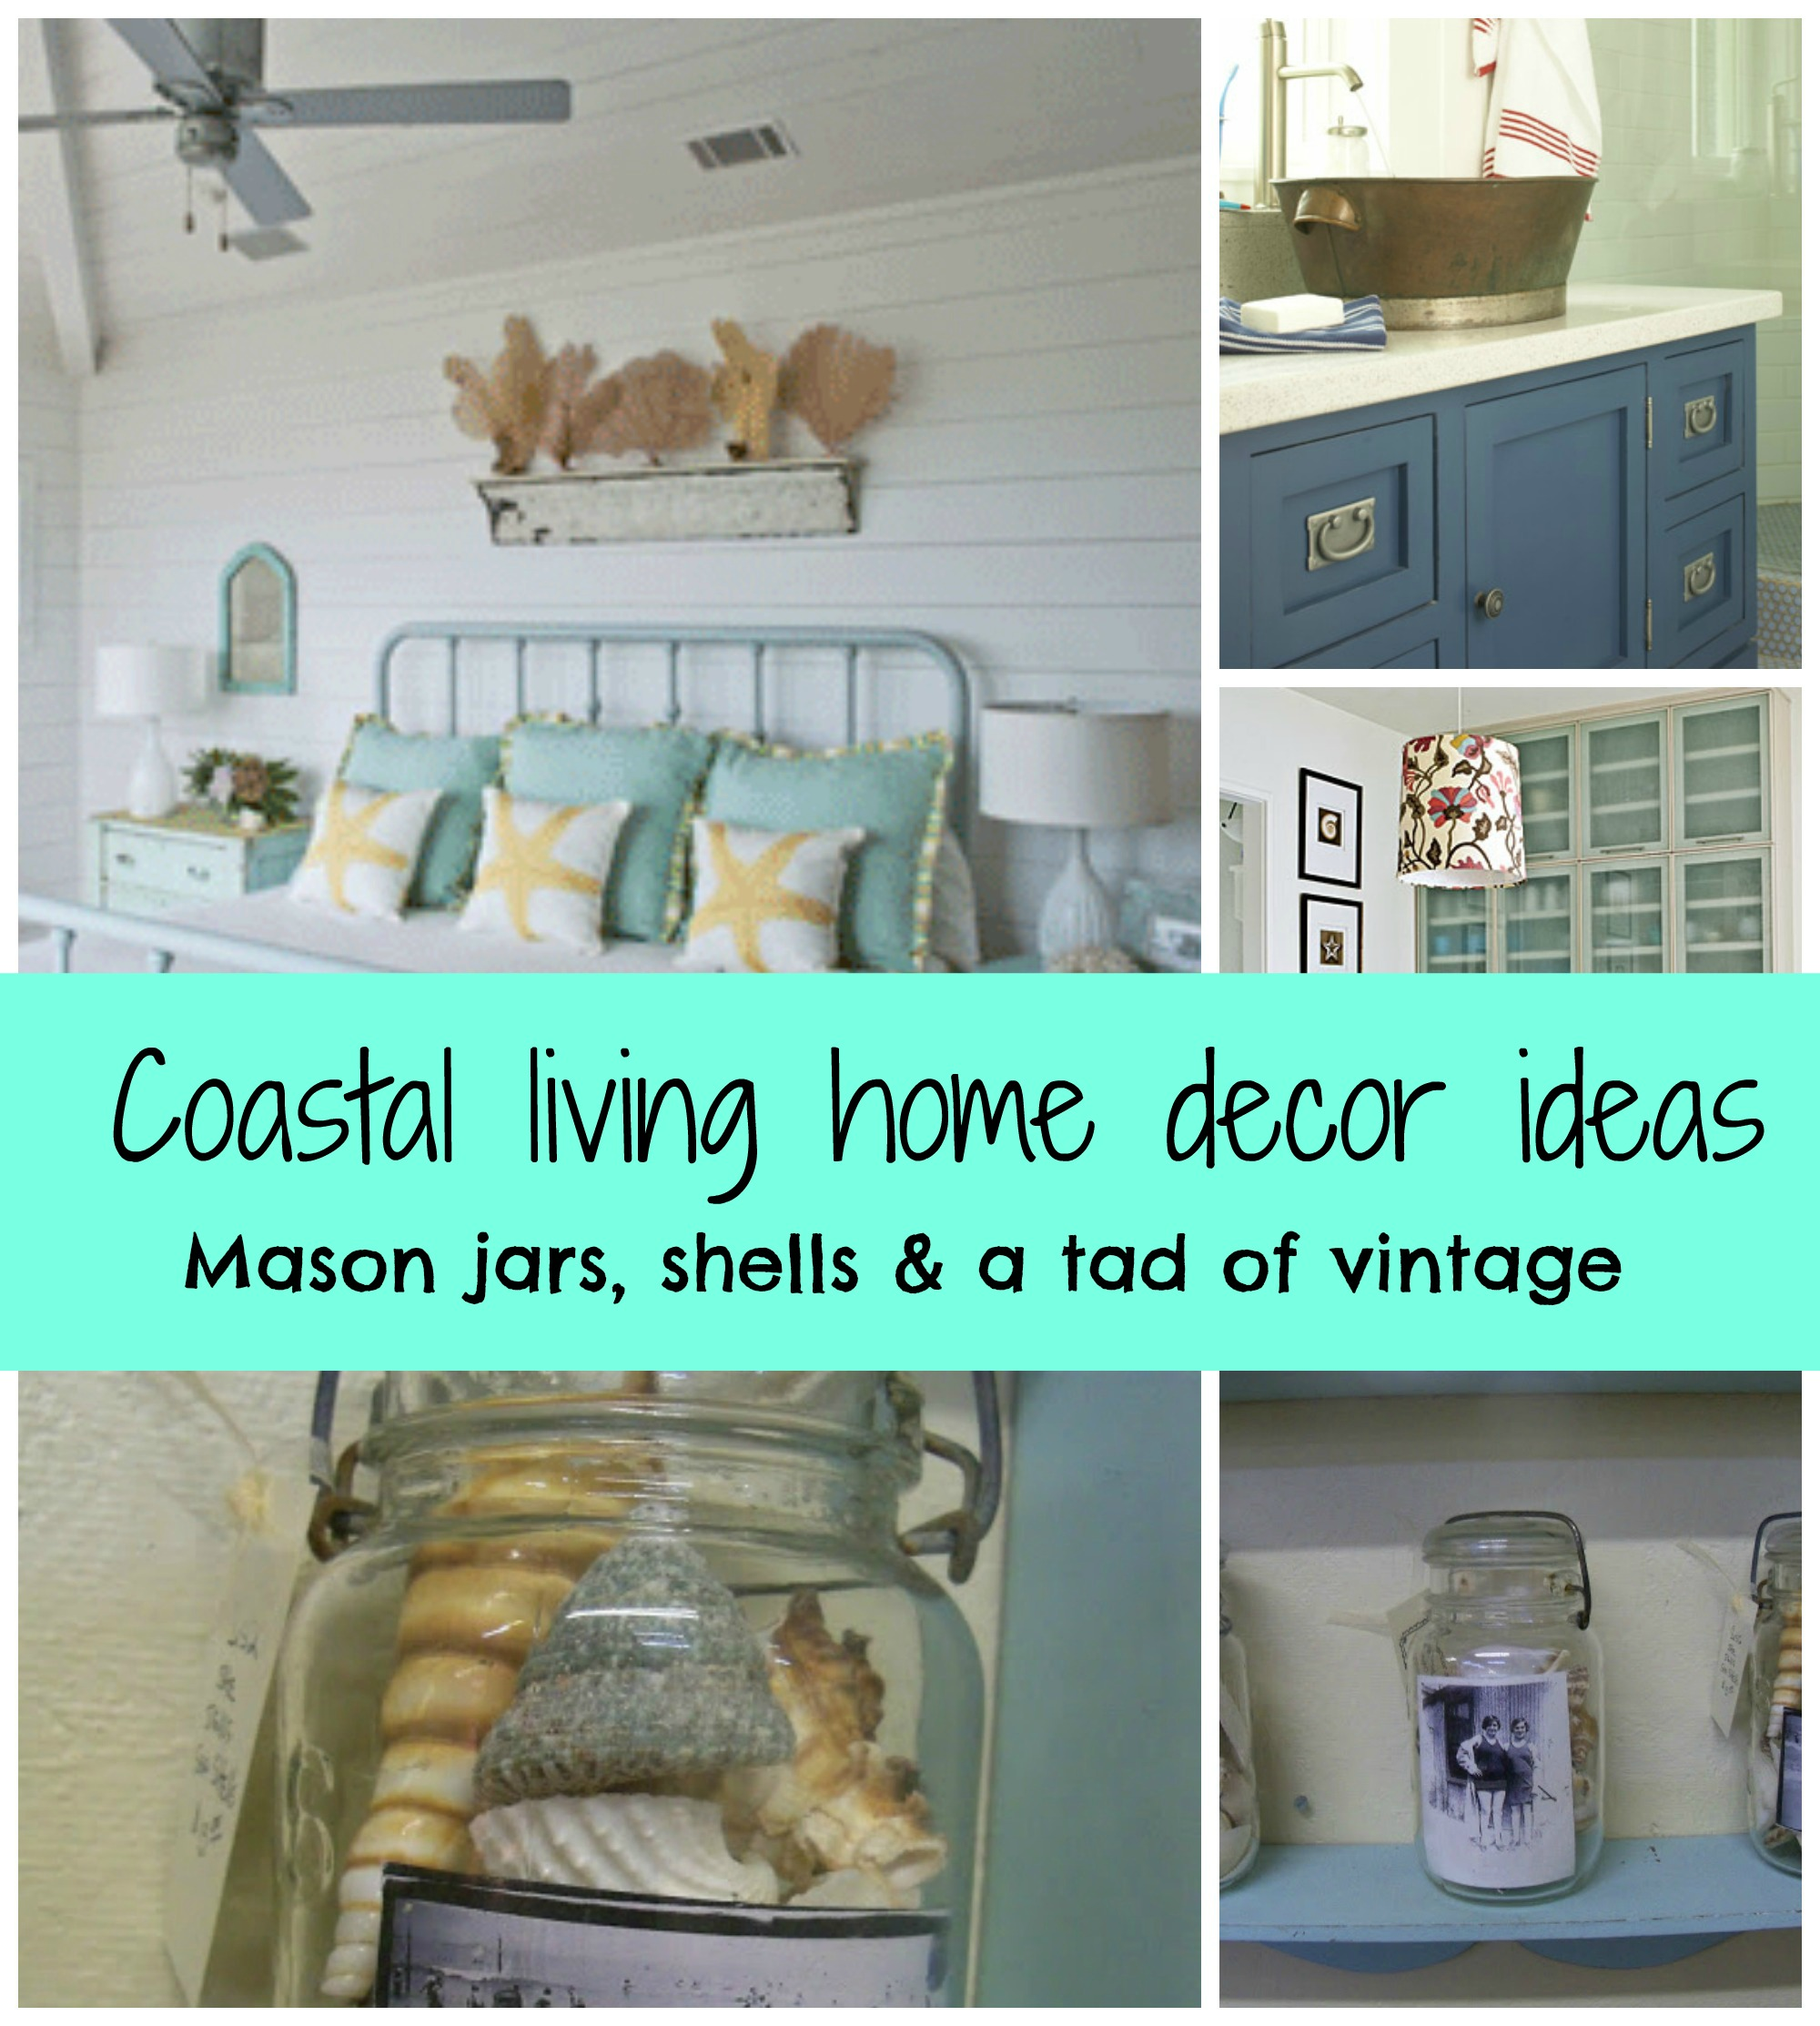 Coastal living nifty decor ideas debbiedoos for Living decor ideas